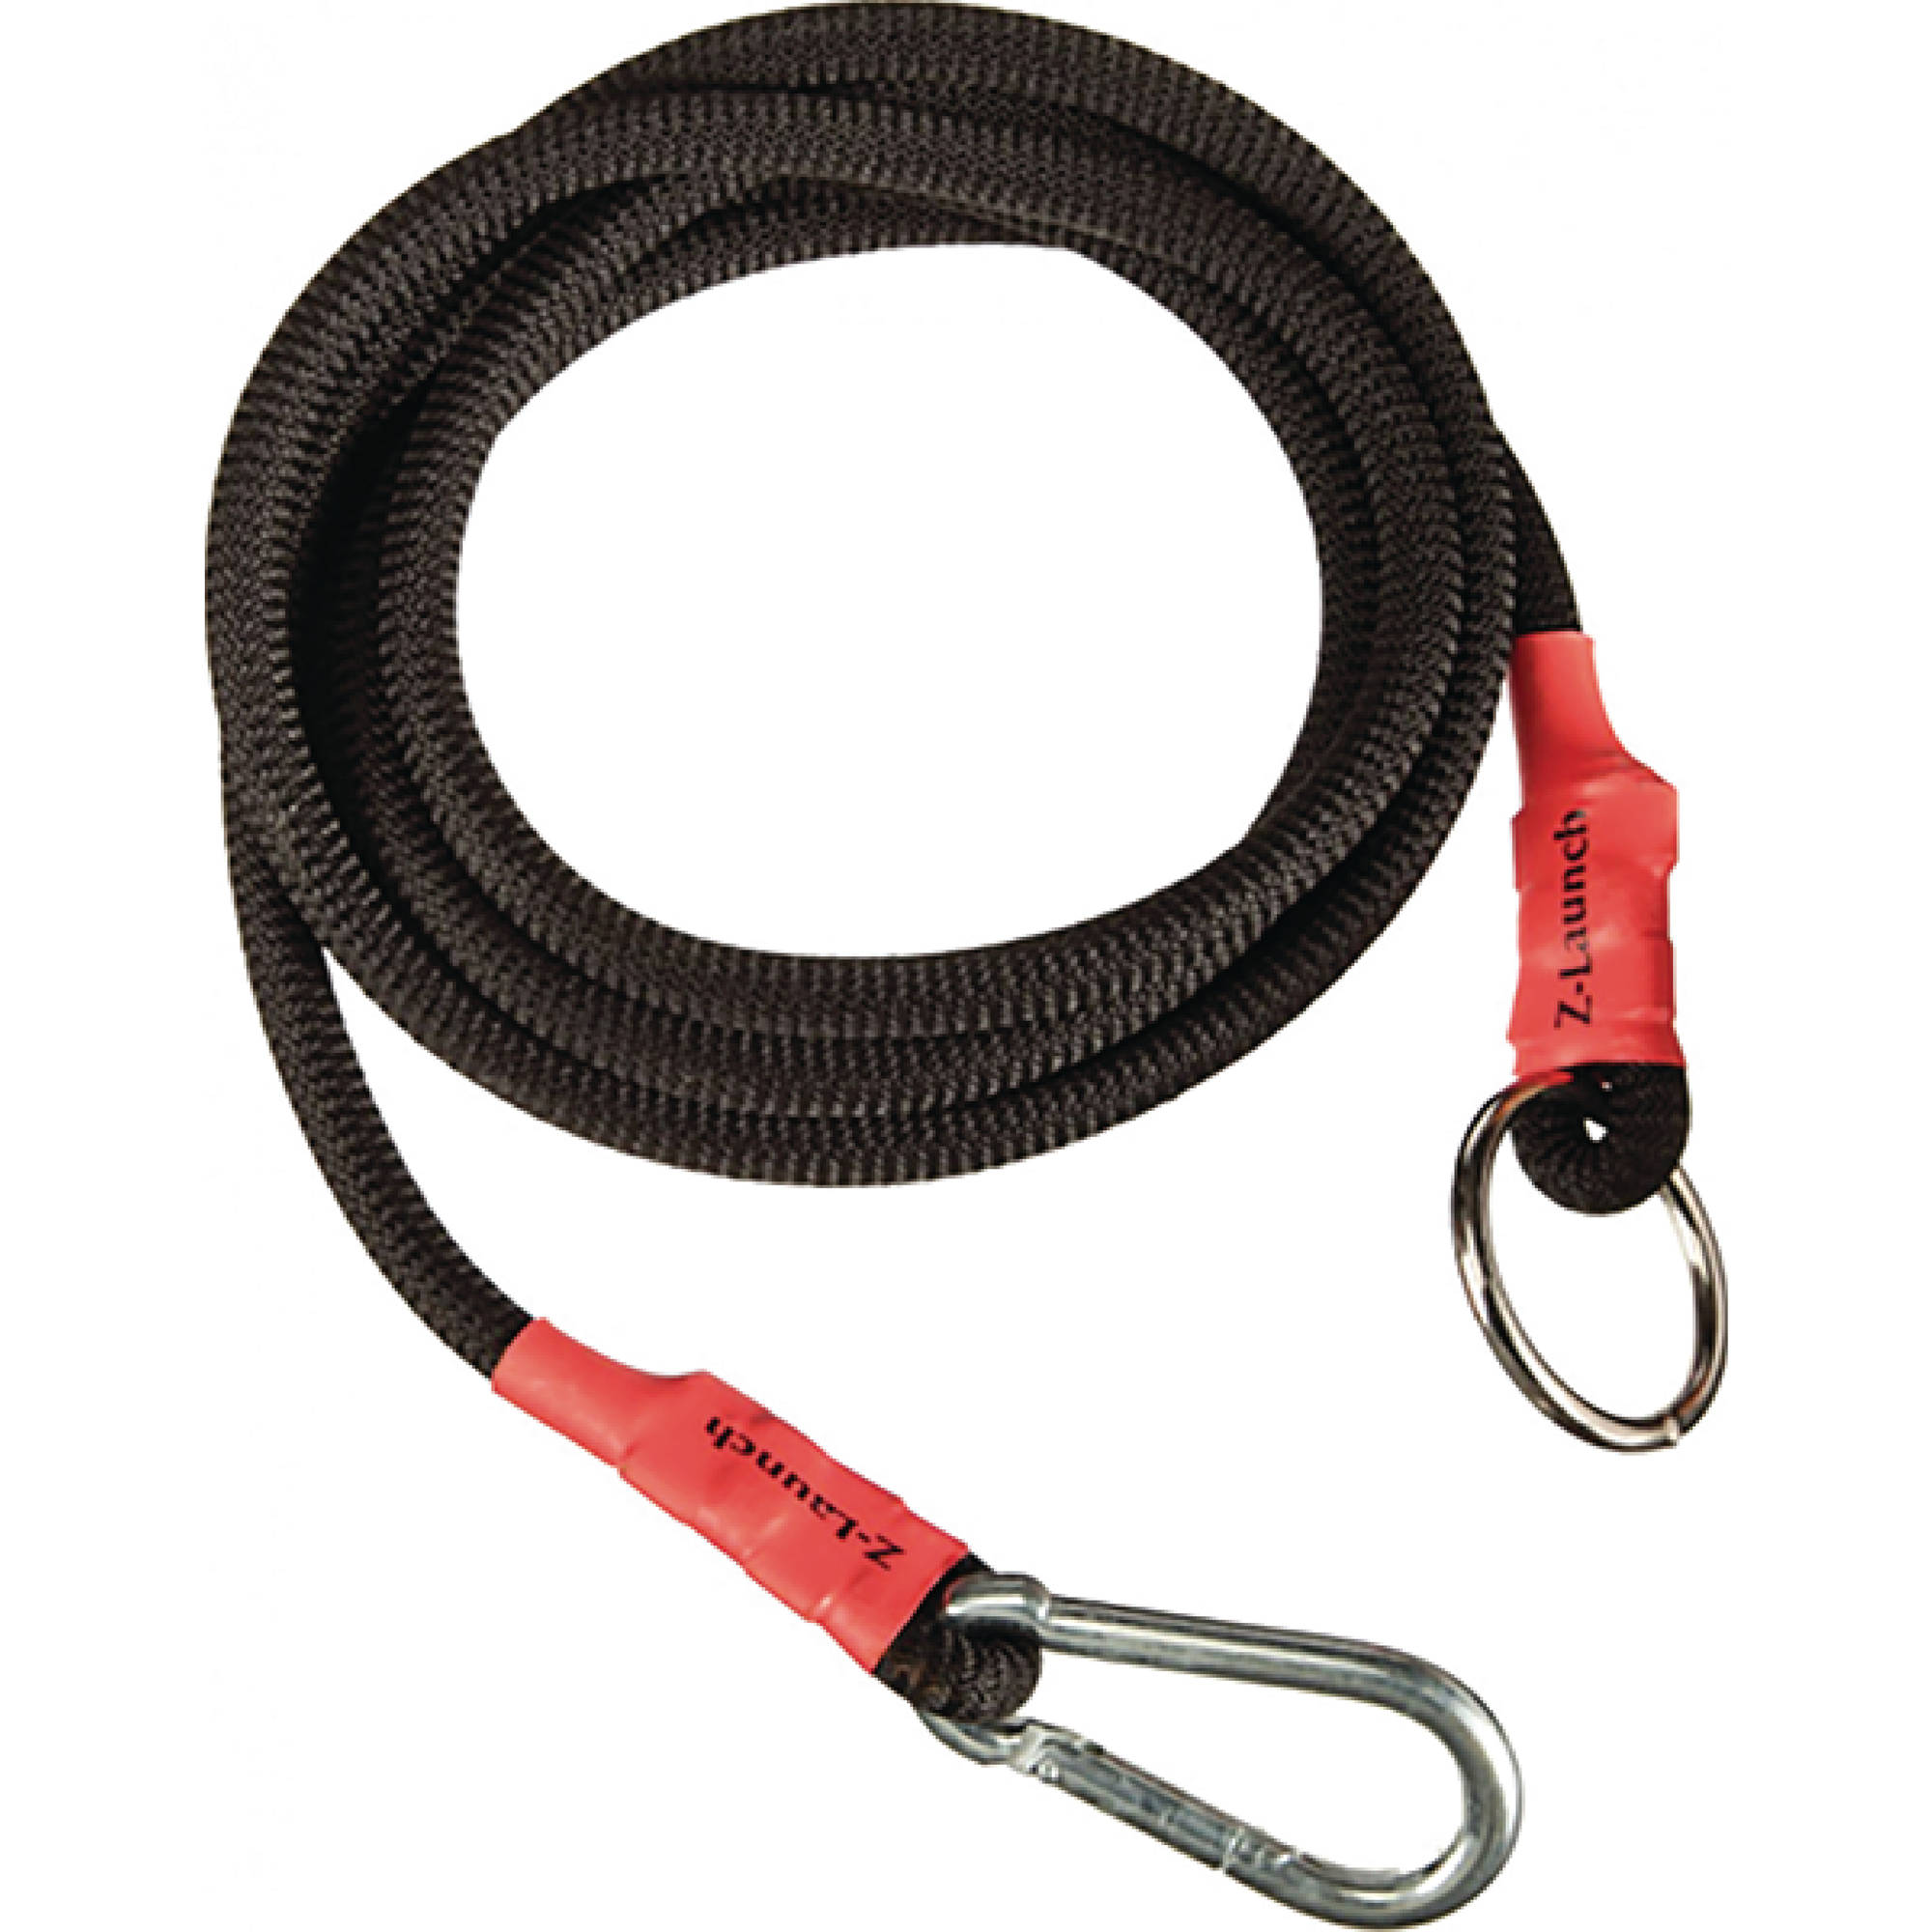 T-H Marine ZL-10 Z-Launch Watercraft Boat Solo Launch Cord, 20' by T-H Marine